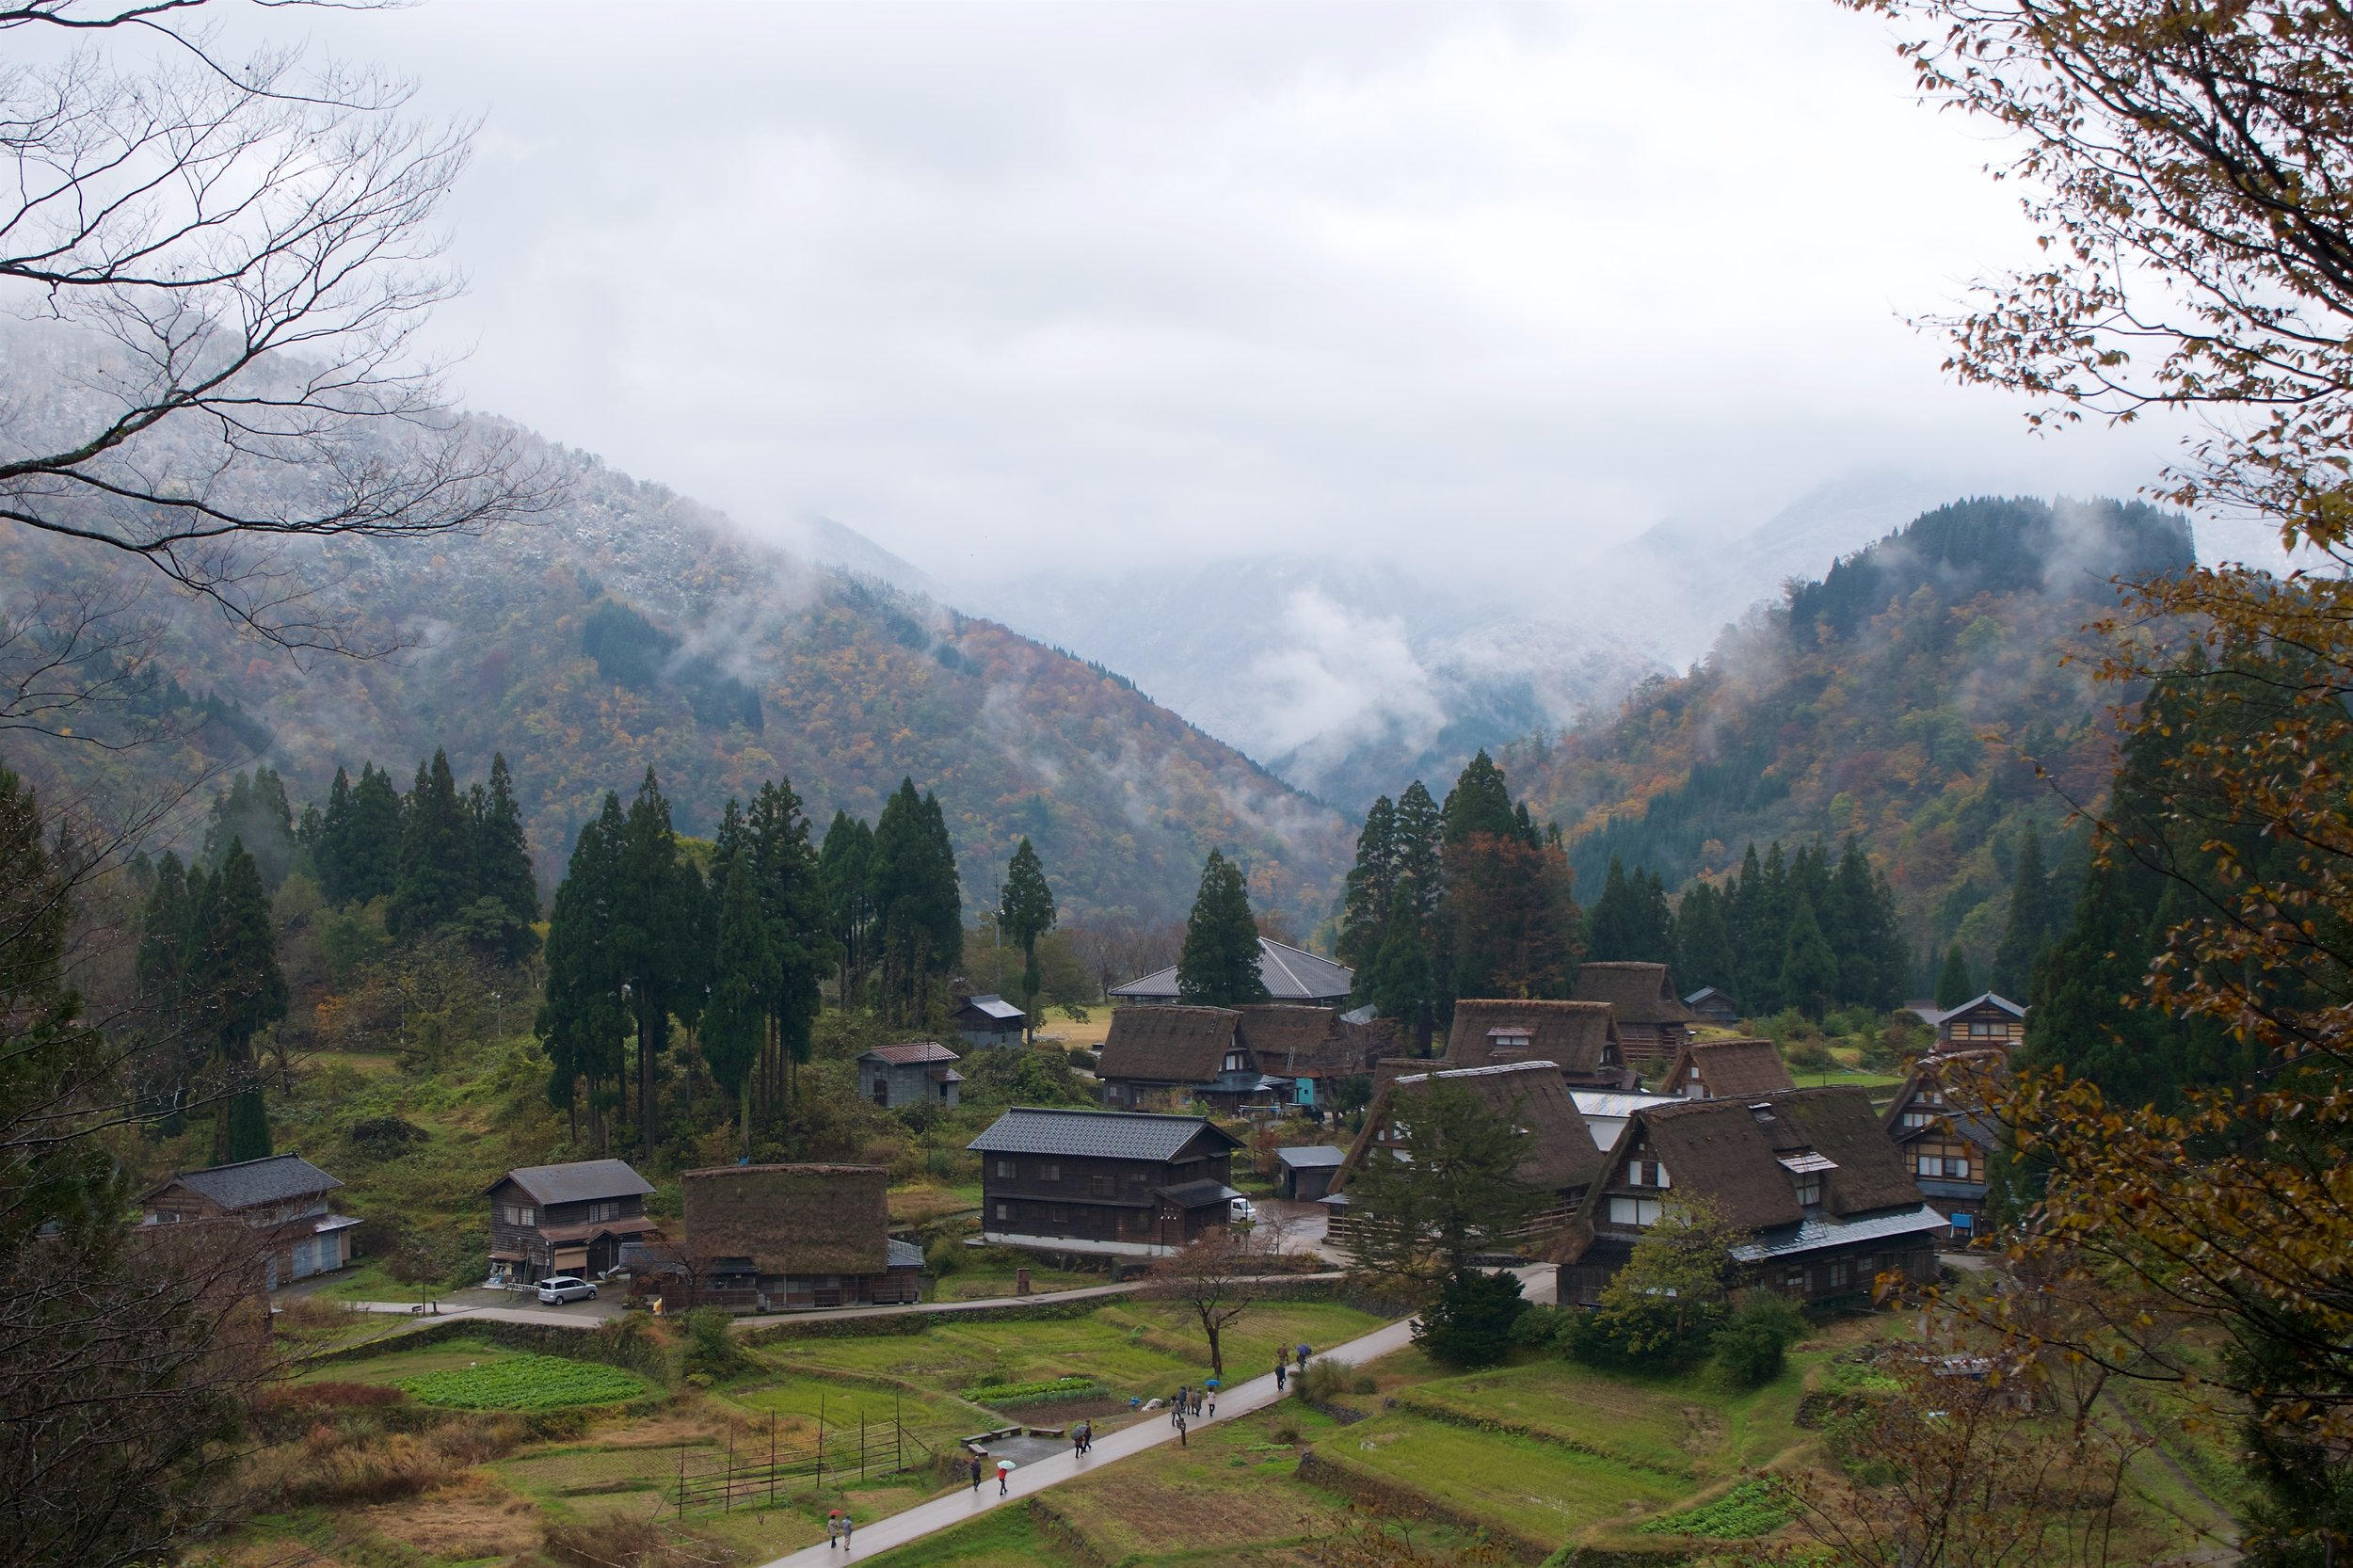 About half of the village can be seen here